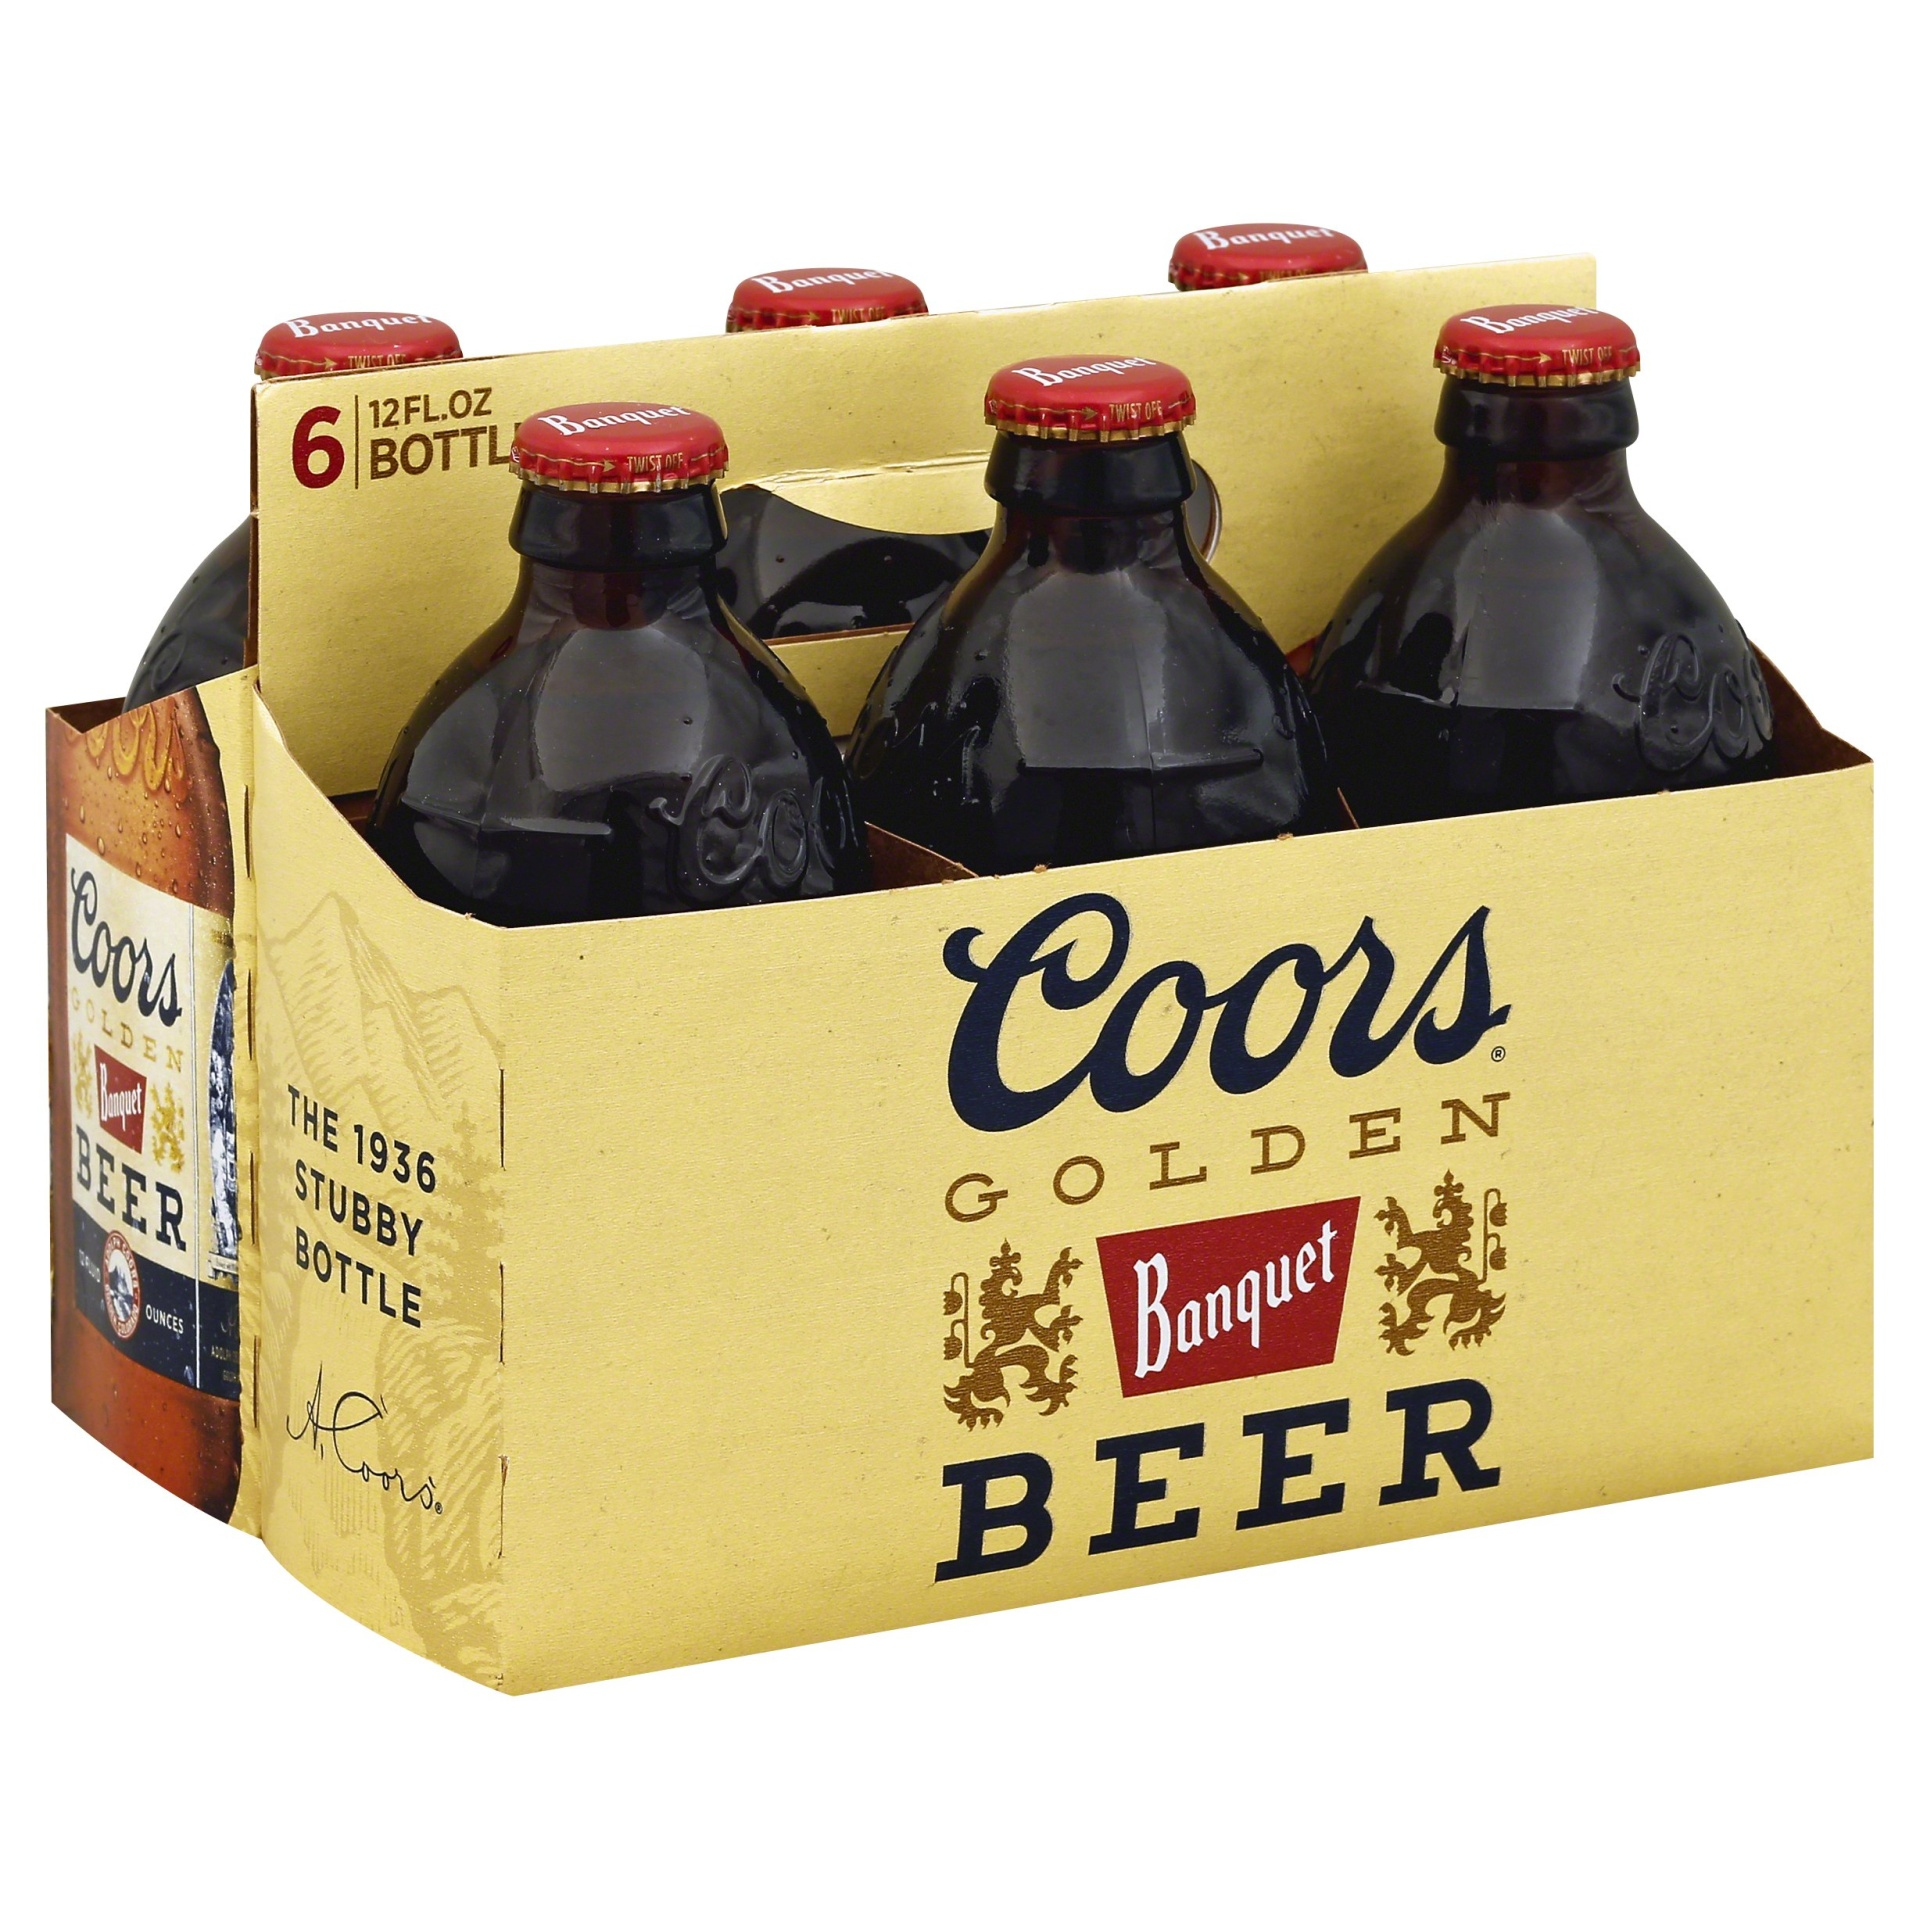 slide 1 of 2, Coors Golden Beer Bottles,